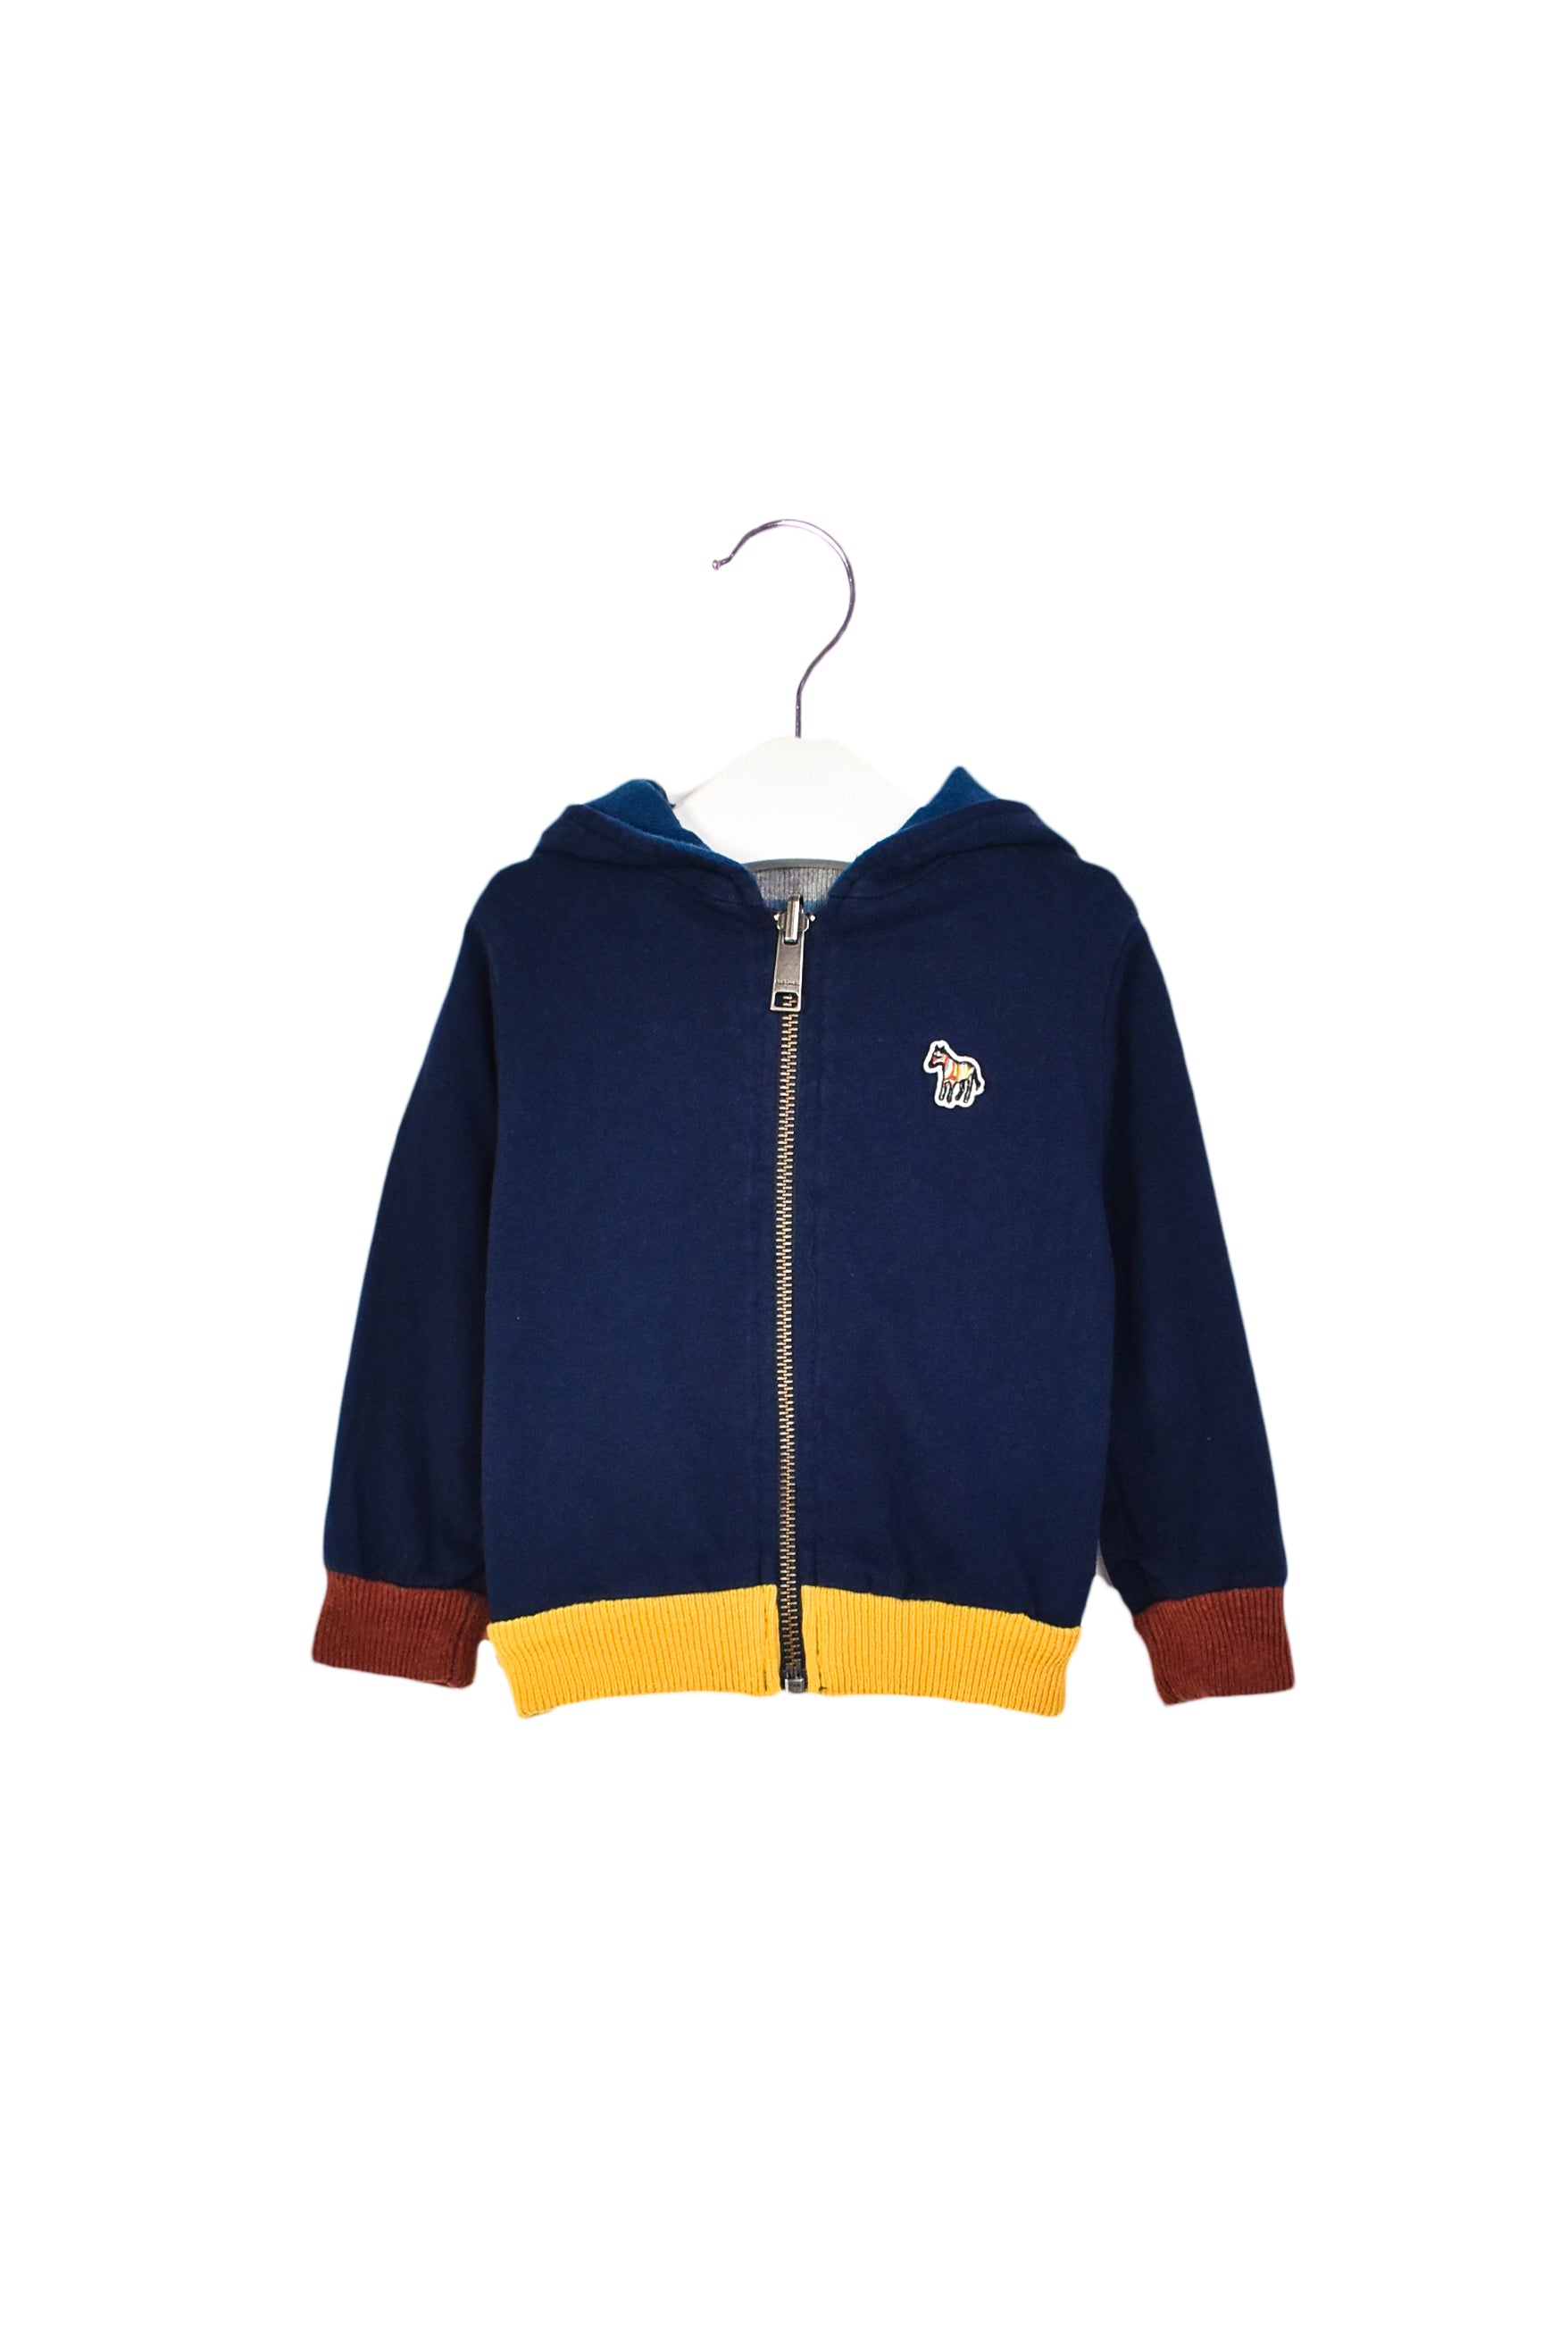 10013240 Paul Smith Baby~Cardigan 6M (Reversible) at Retykle